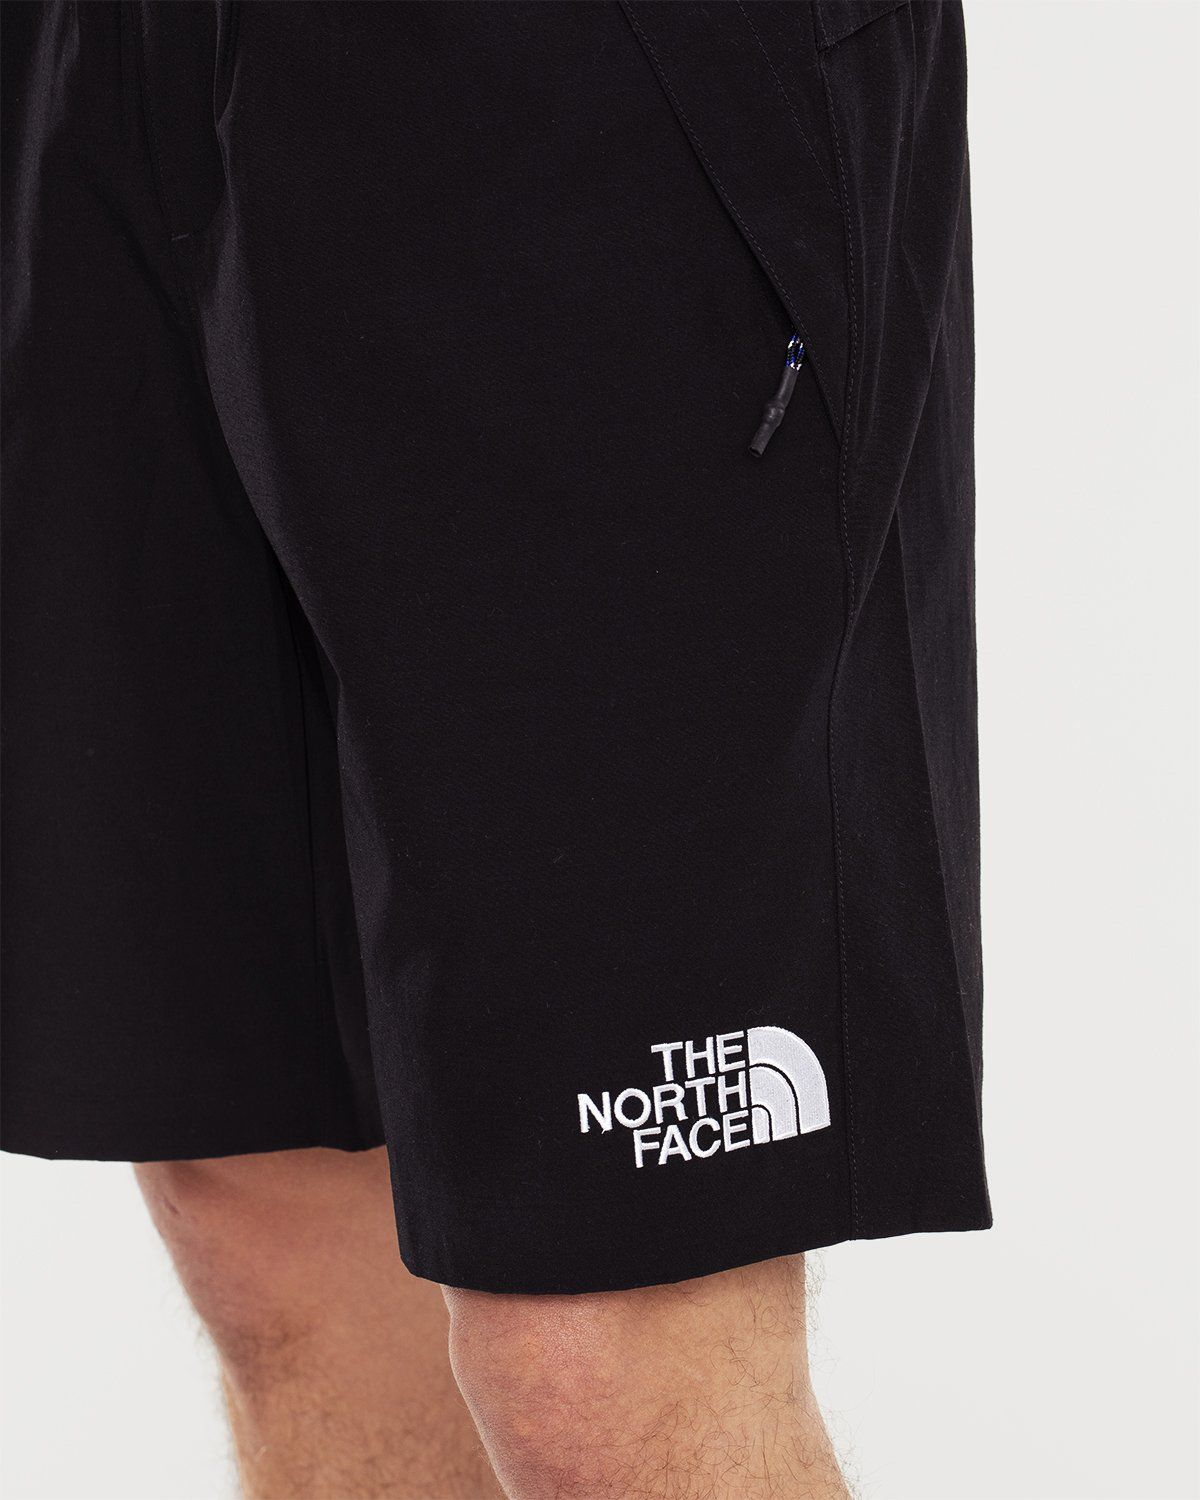 The North Face Black Series - Spectra® Shorts Black - Image 4